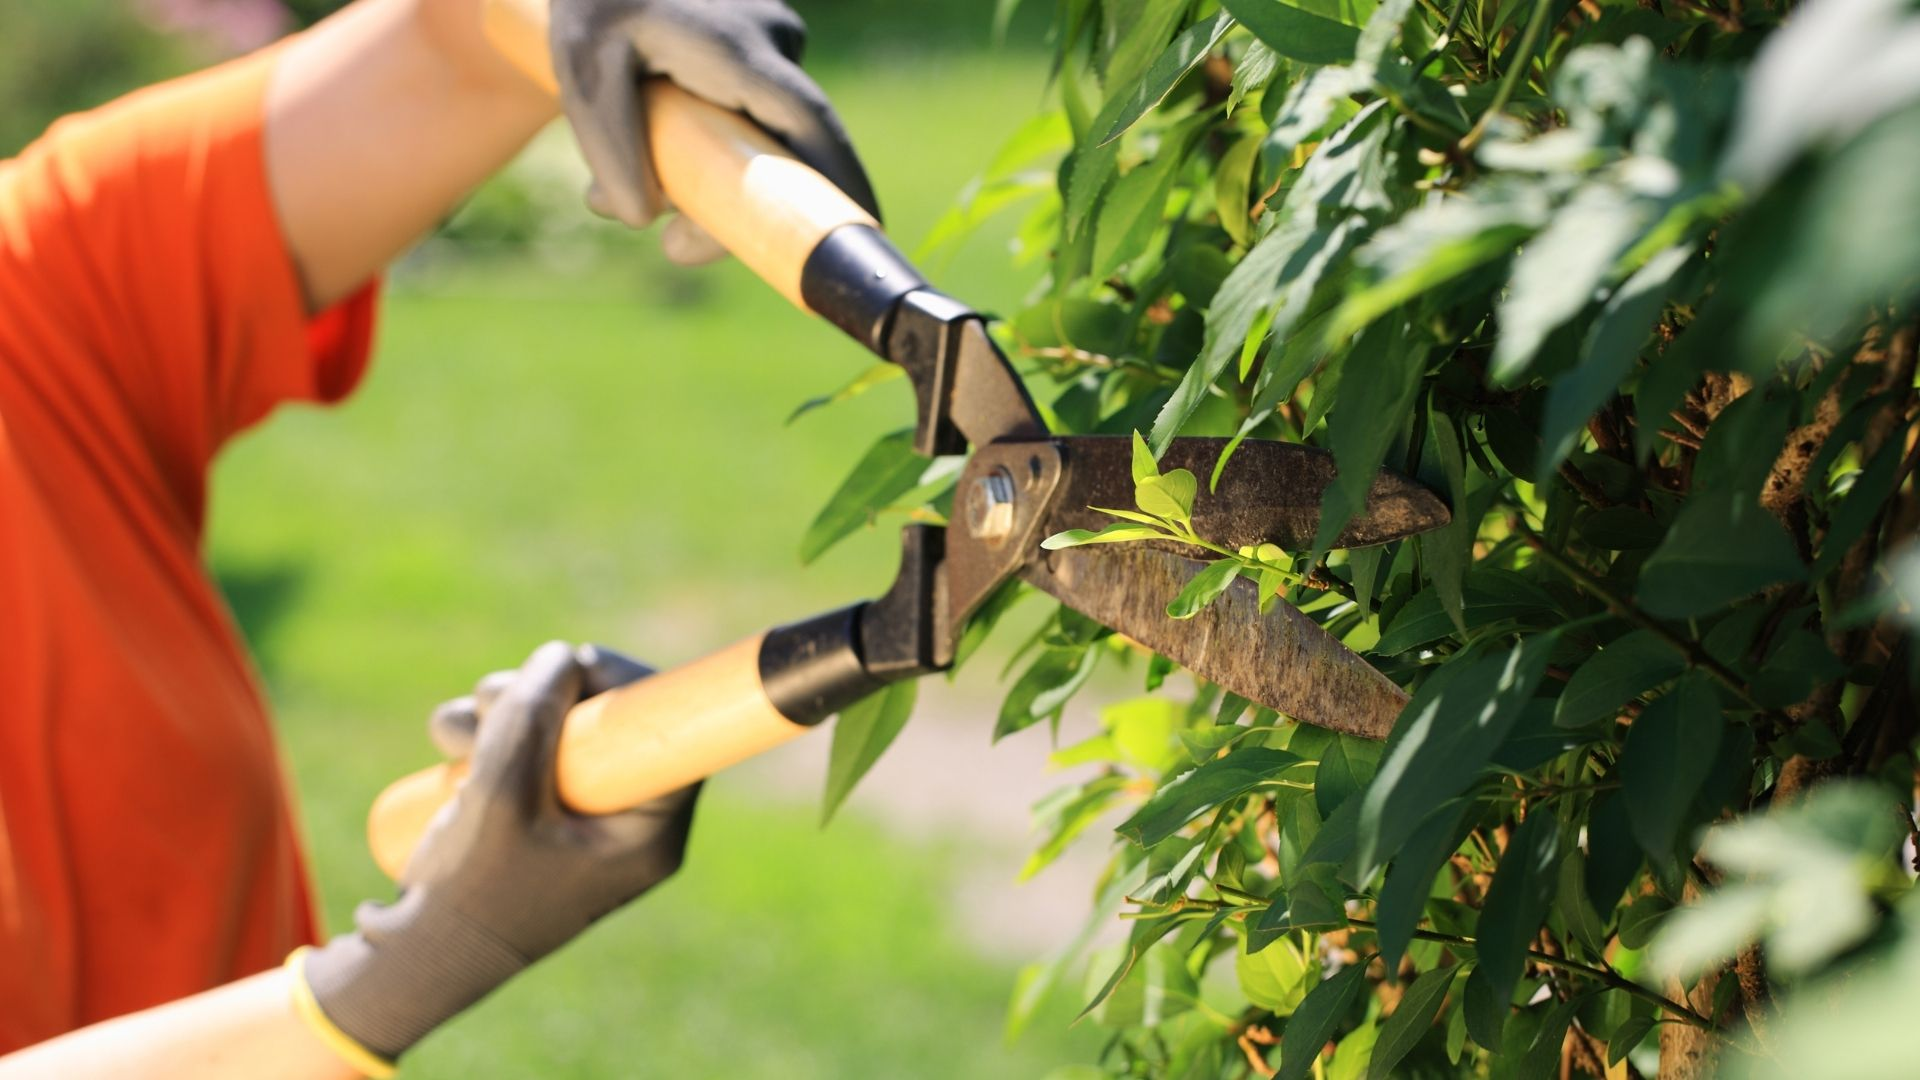 Hedge Trimming Services in Islamabad and Rawalpindi